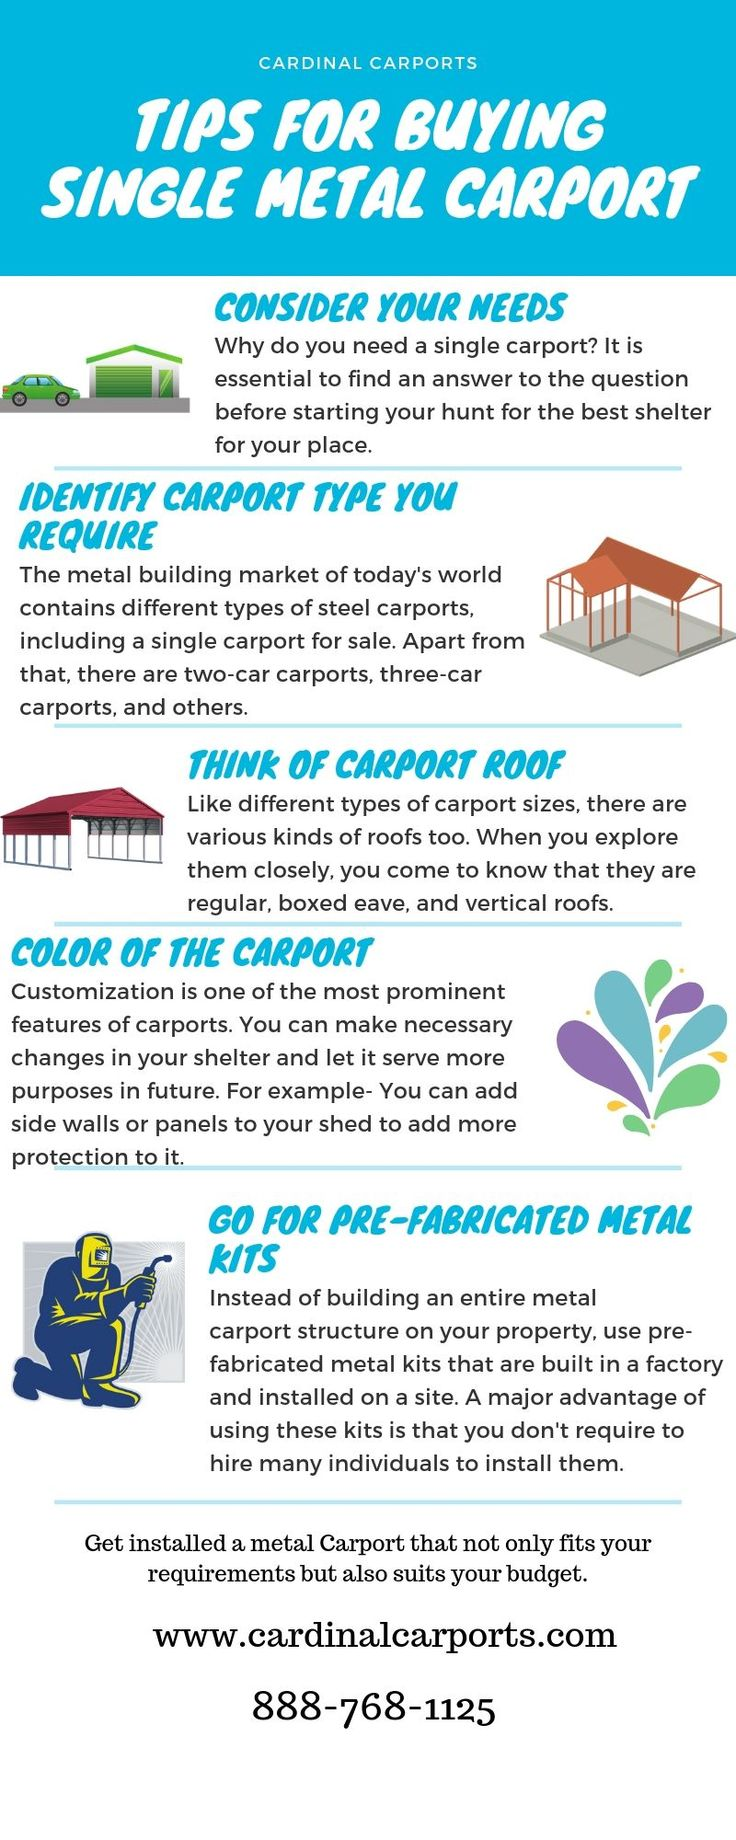 In the market, there are many kinds of carports. They